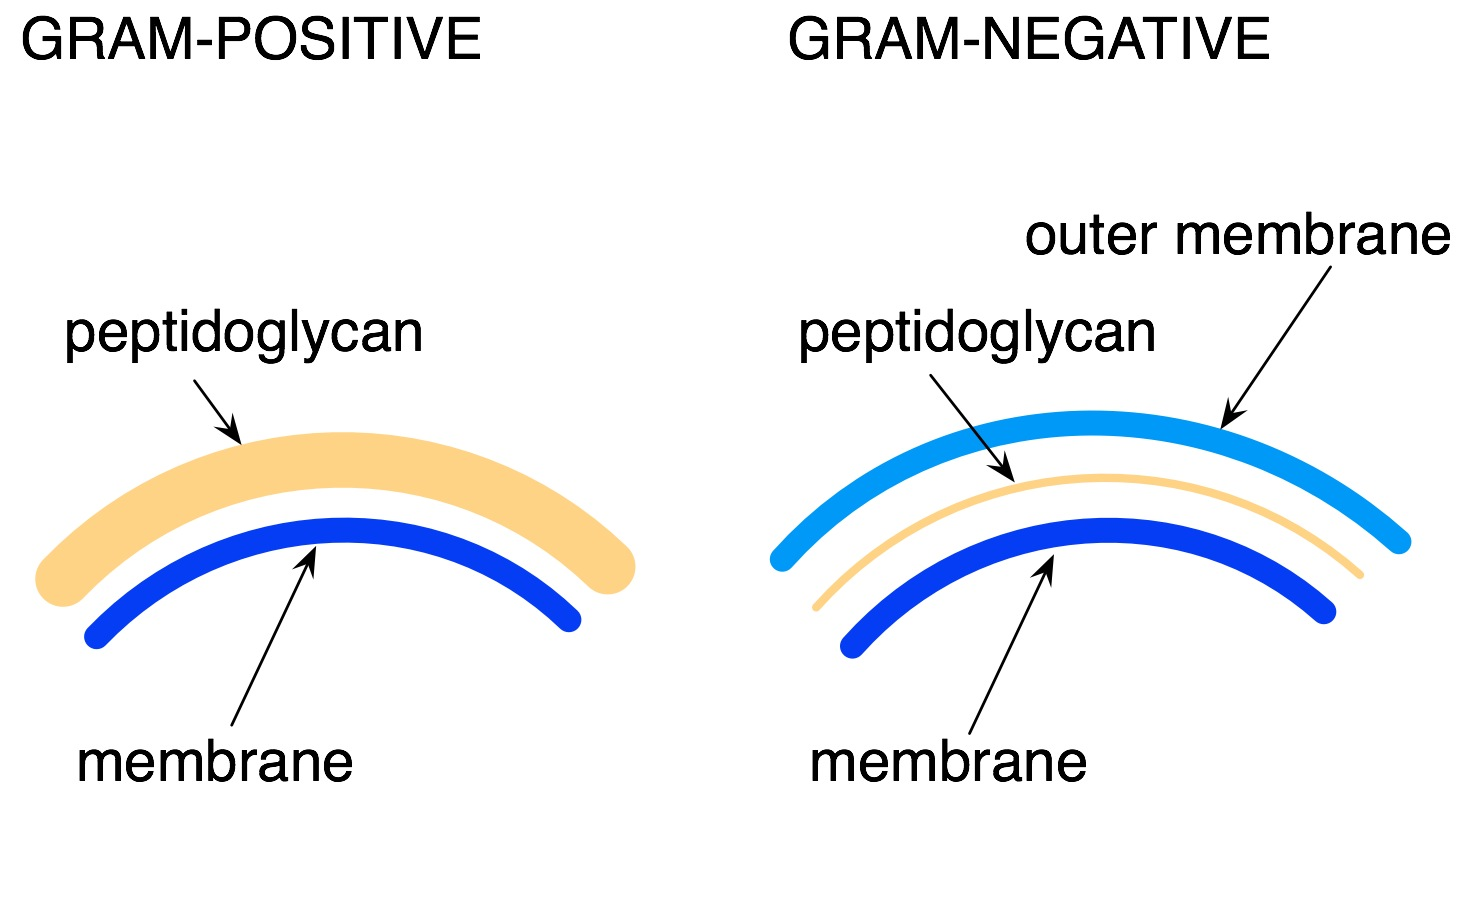 gram negative Gram staining is a type of differential staining used to distinguish between gram positive and gram negative bacterial groups, based on inherent differences in their cell wall constituents stains .